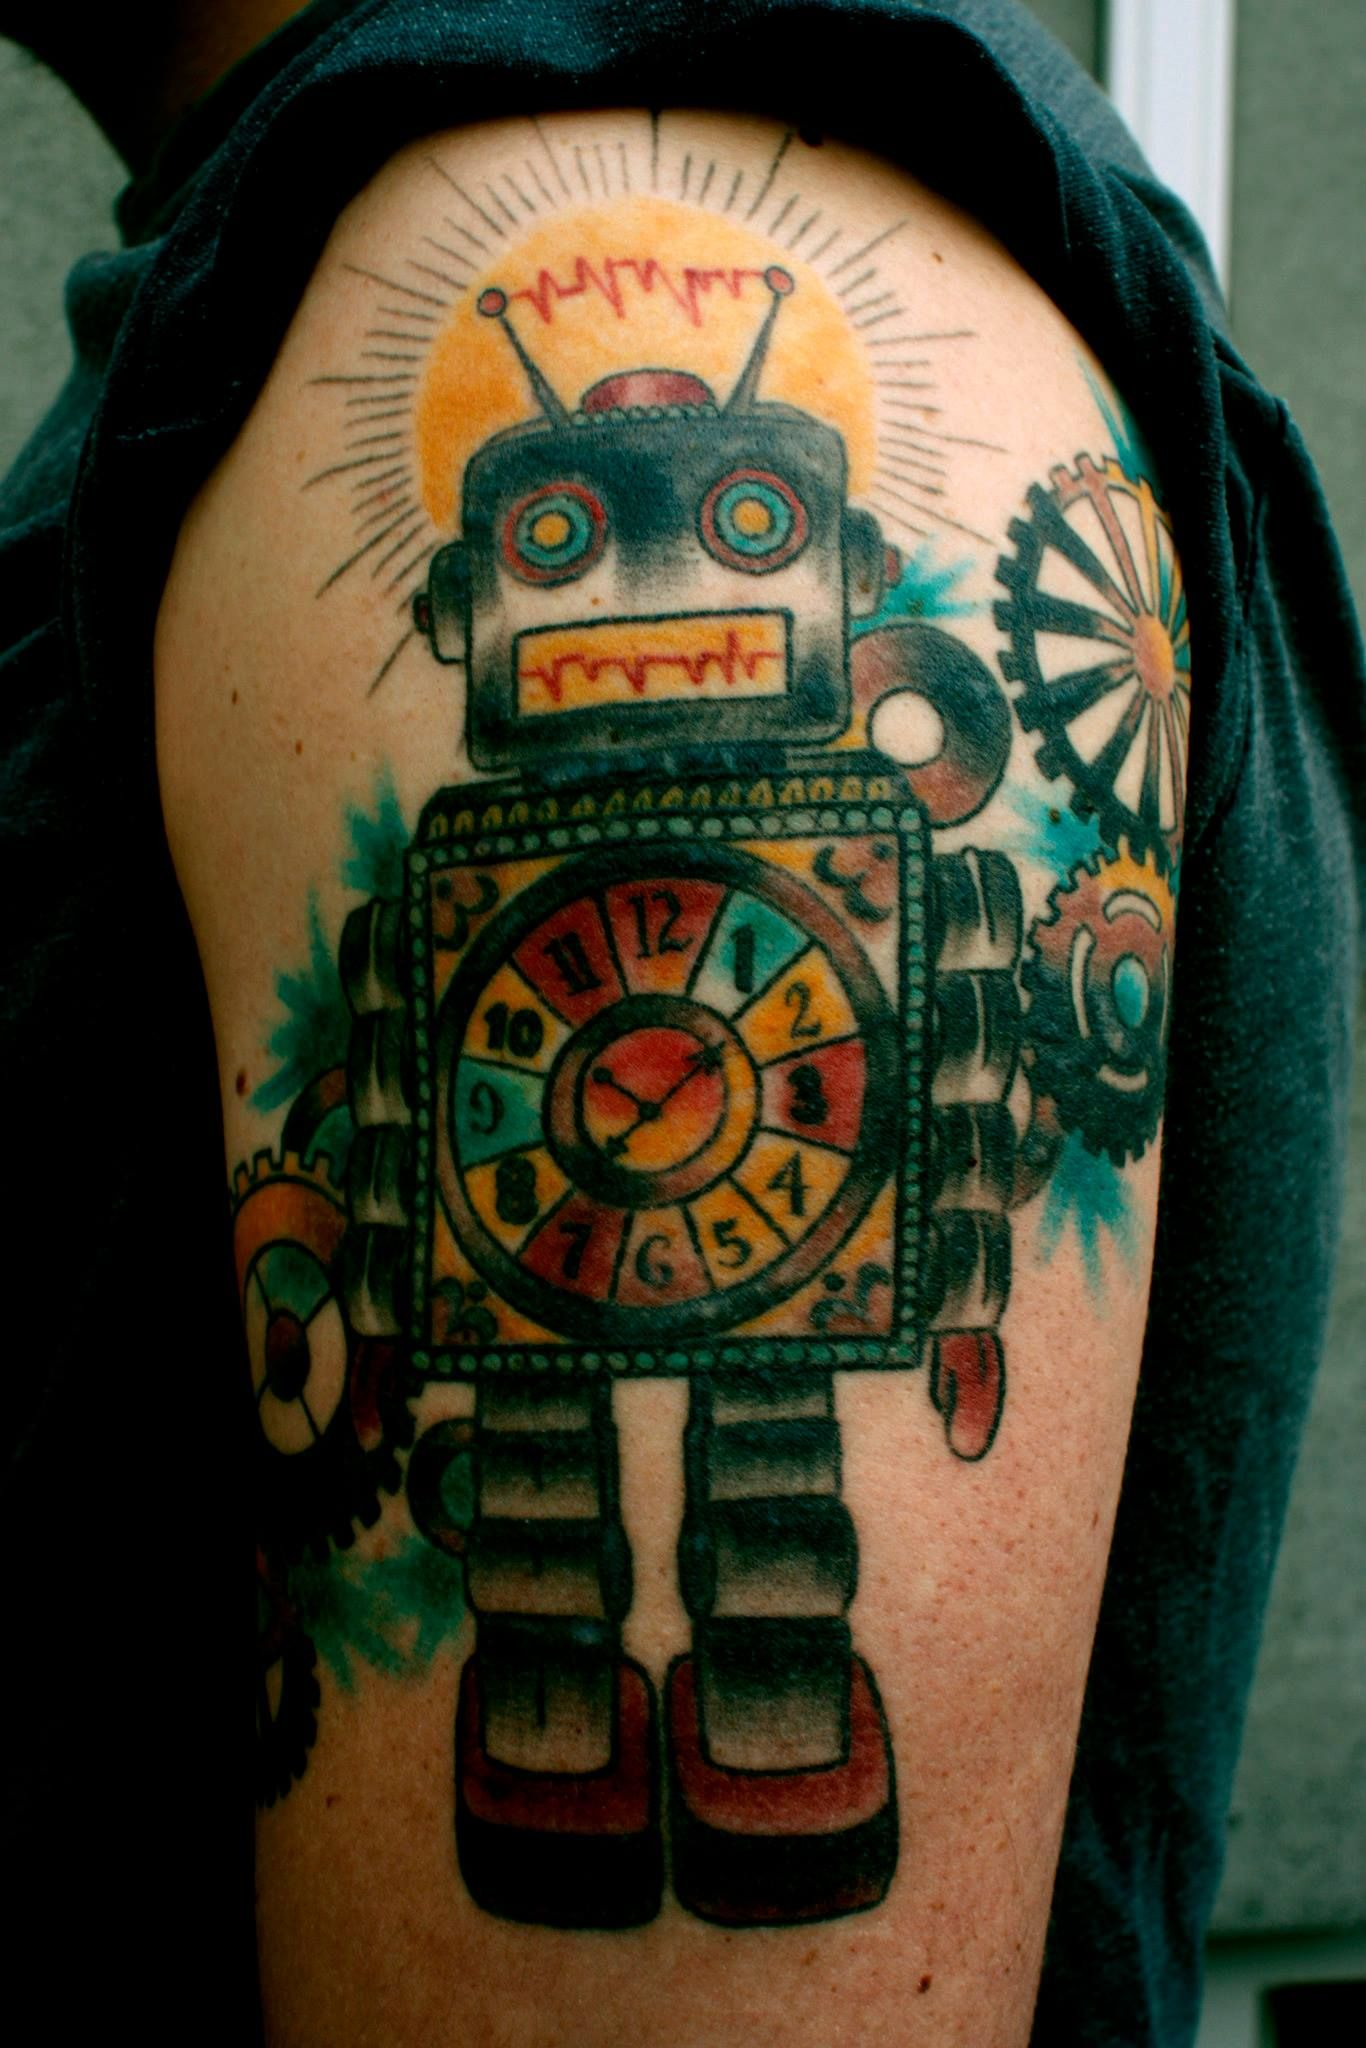 Pin by Colleener Neener on Tattoos Robot tattoo